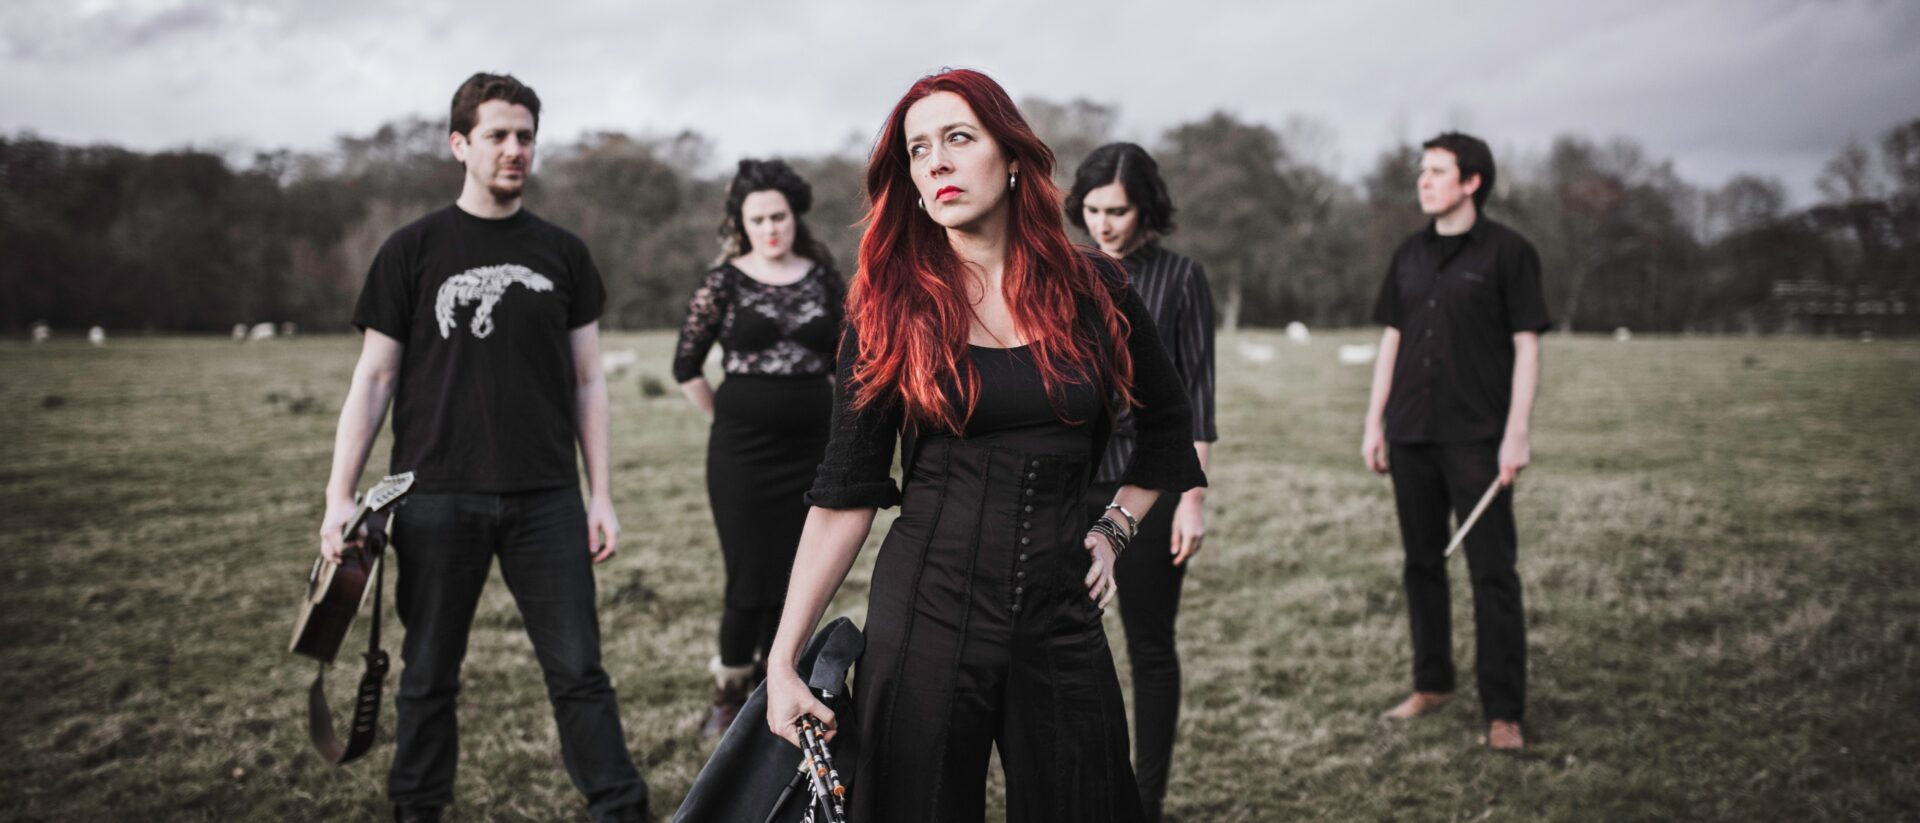 A red-haired woman dressed casually in black and holding the Northumberland pipes poses in a field next to her band mates